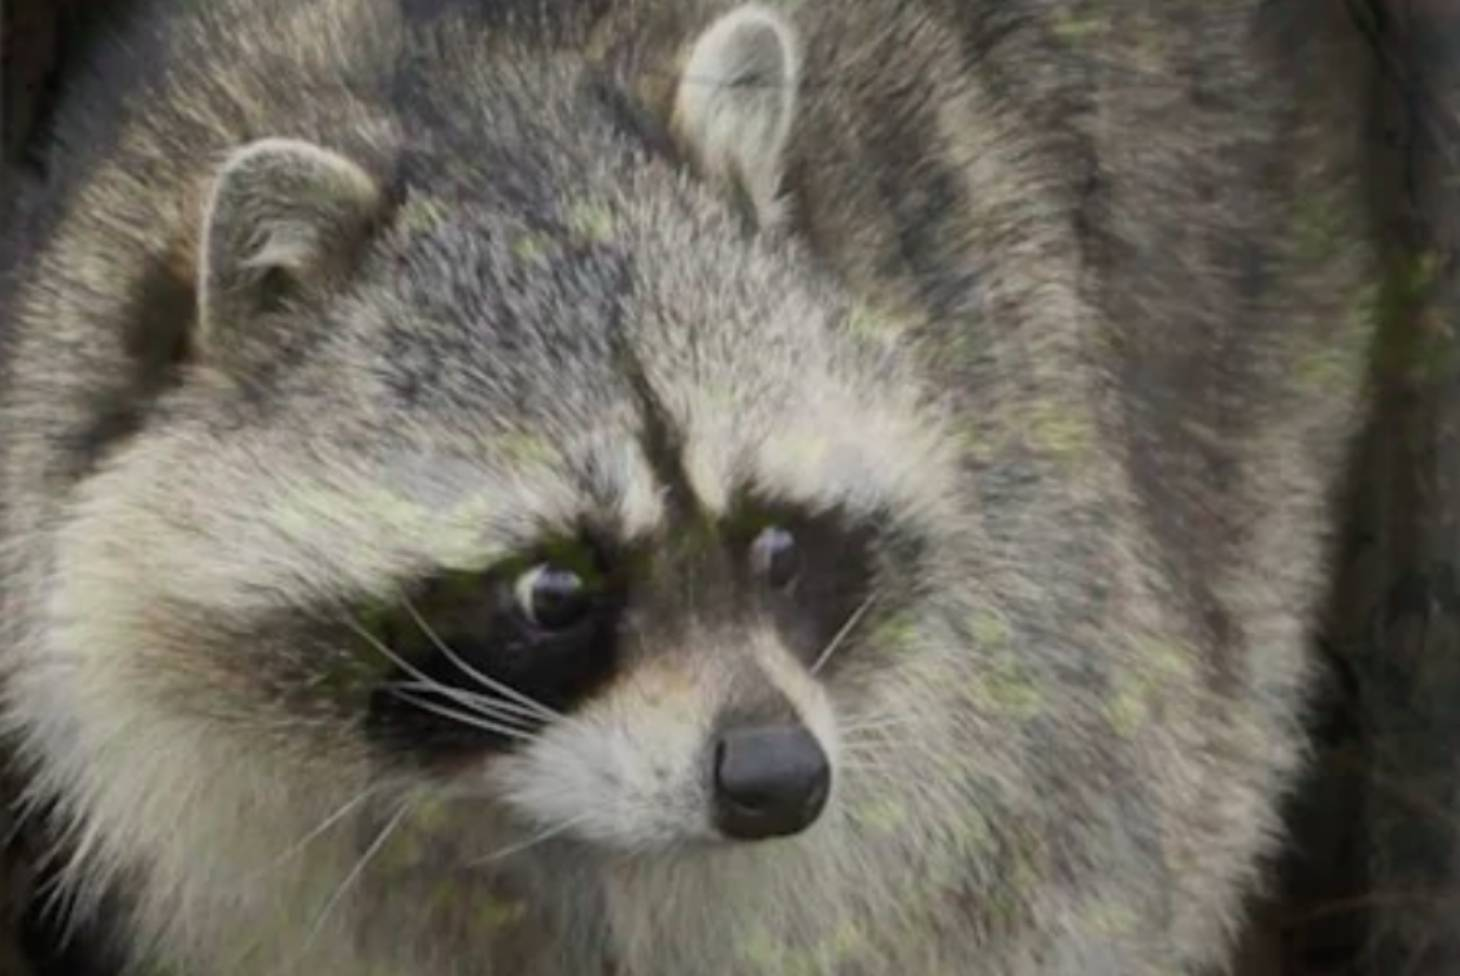 221f6f2d23 This is a story about a stoned raccoon at a fire station | Stuff.co.nz